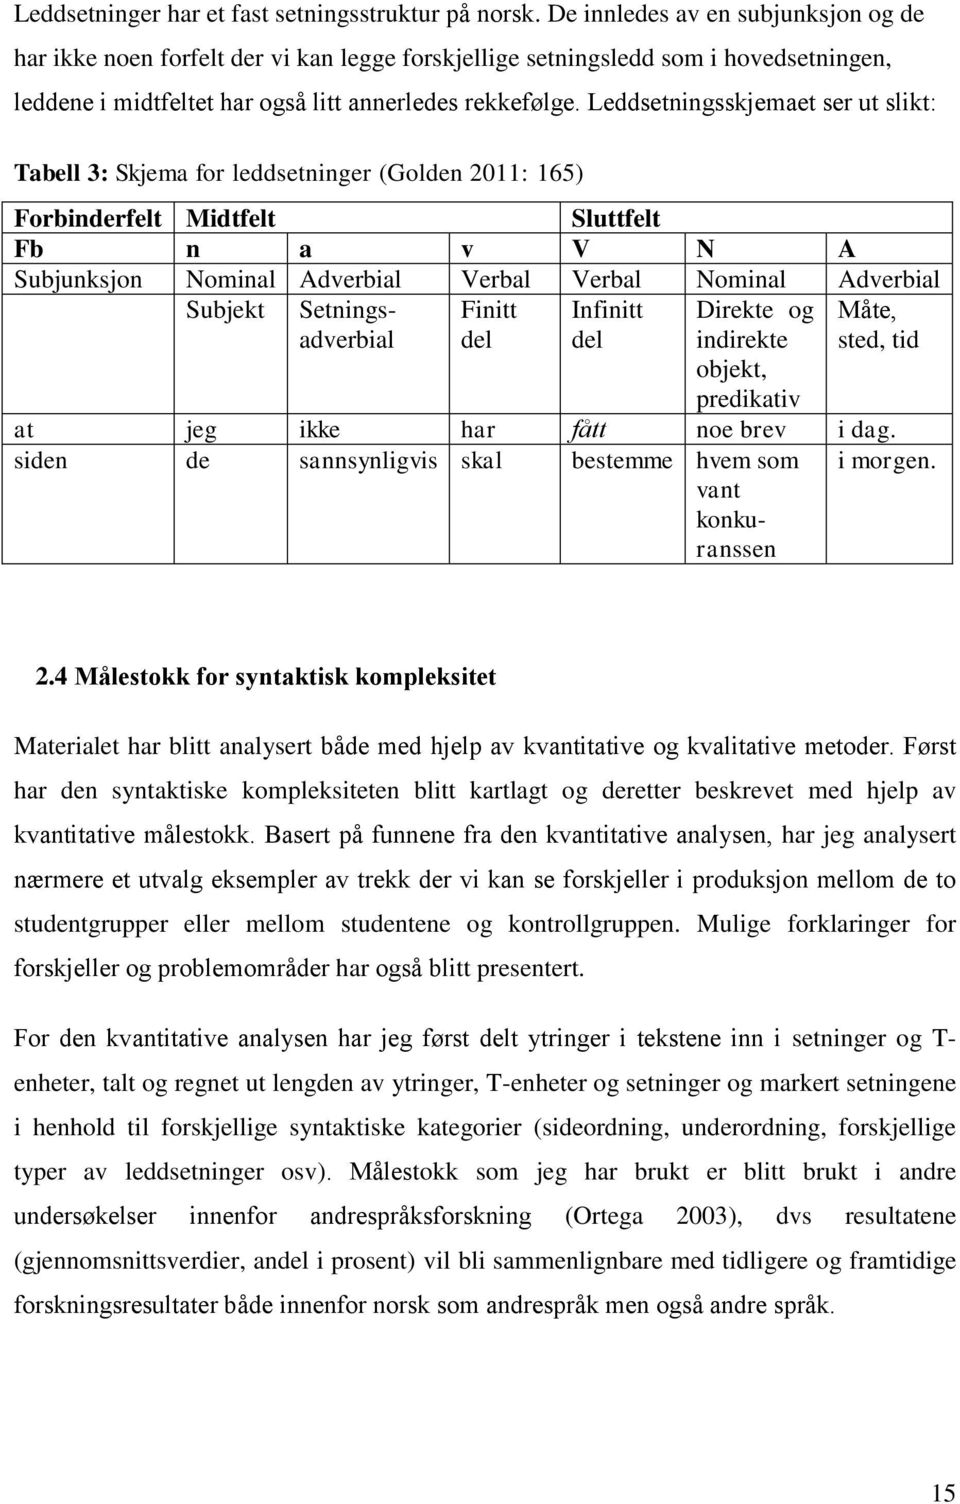 Leddsetningsskjemaet ser ut slikt: Tabell 3: Skjema for leddsetninger (Golden 2011: 165) Forbinderfelt Midtfelt Sluttfelt Fb n a v V N A Subjunksjon Nominal Adverbial Verbal Verbal Nominal Adverbial